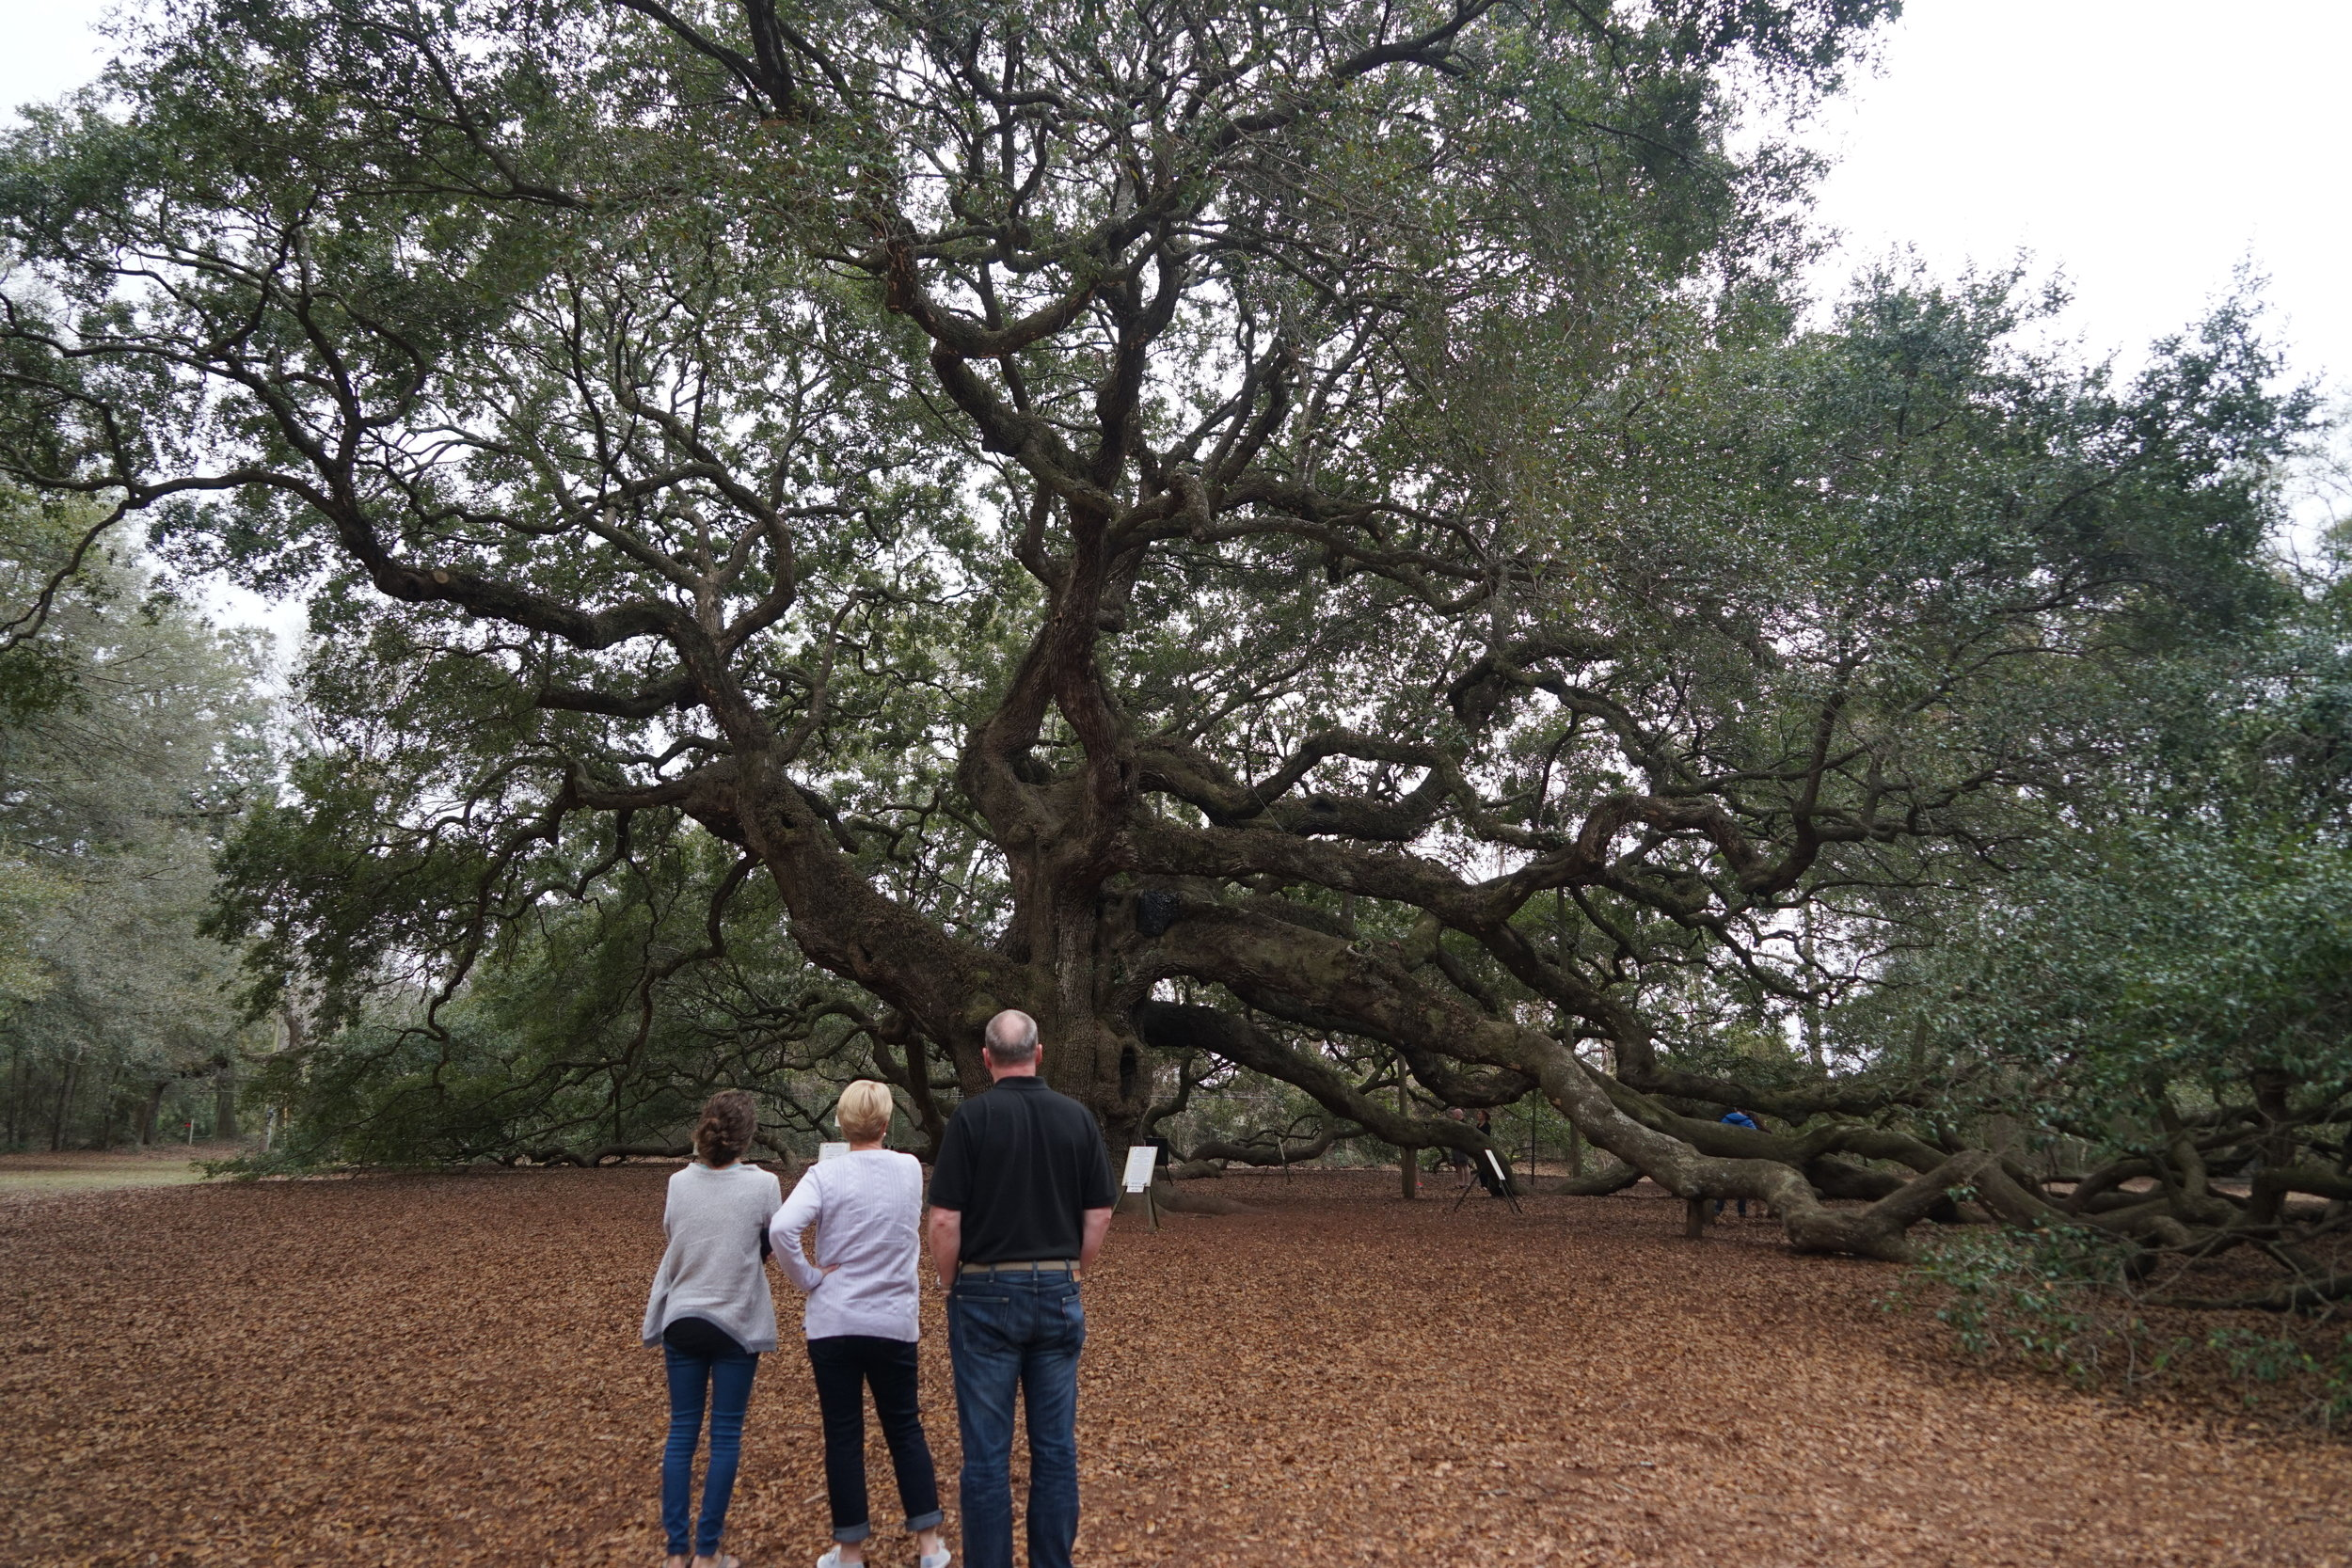 Taking in the massiveness of the Angel Oak